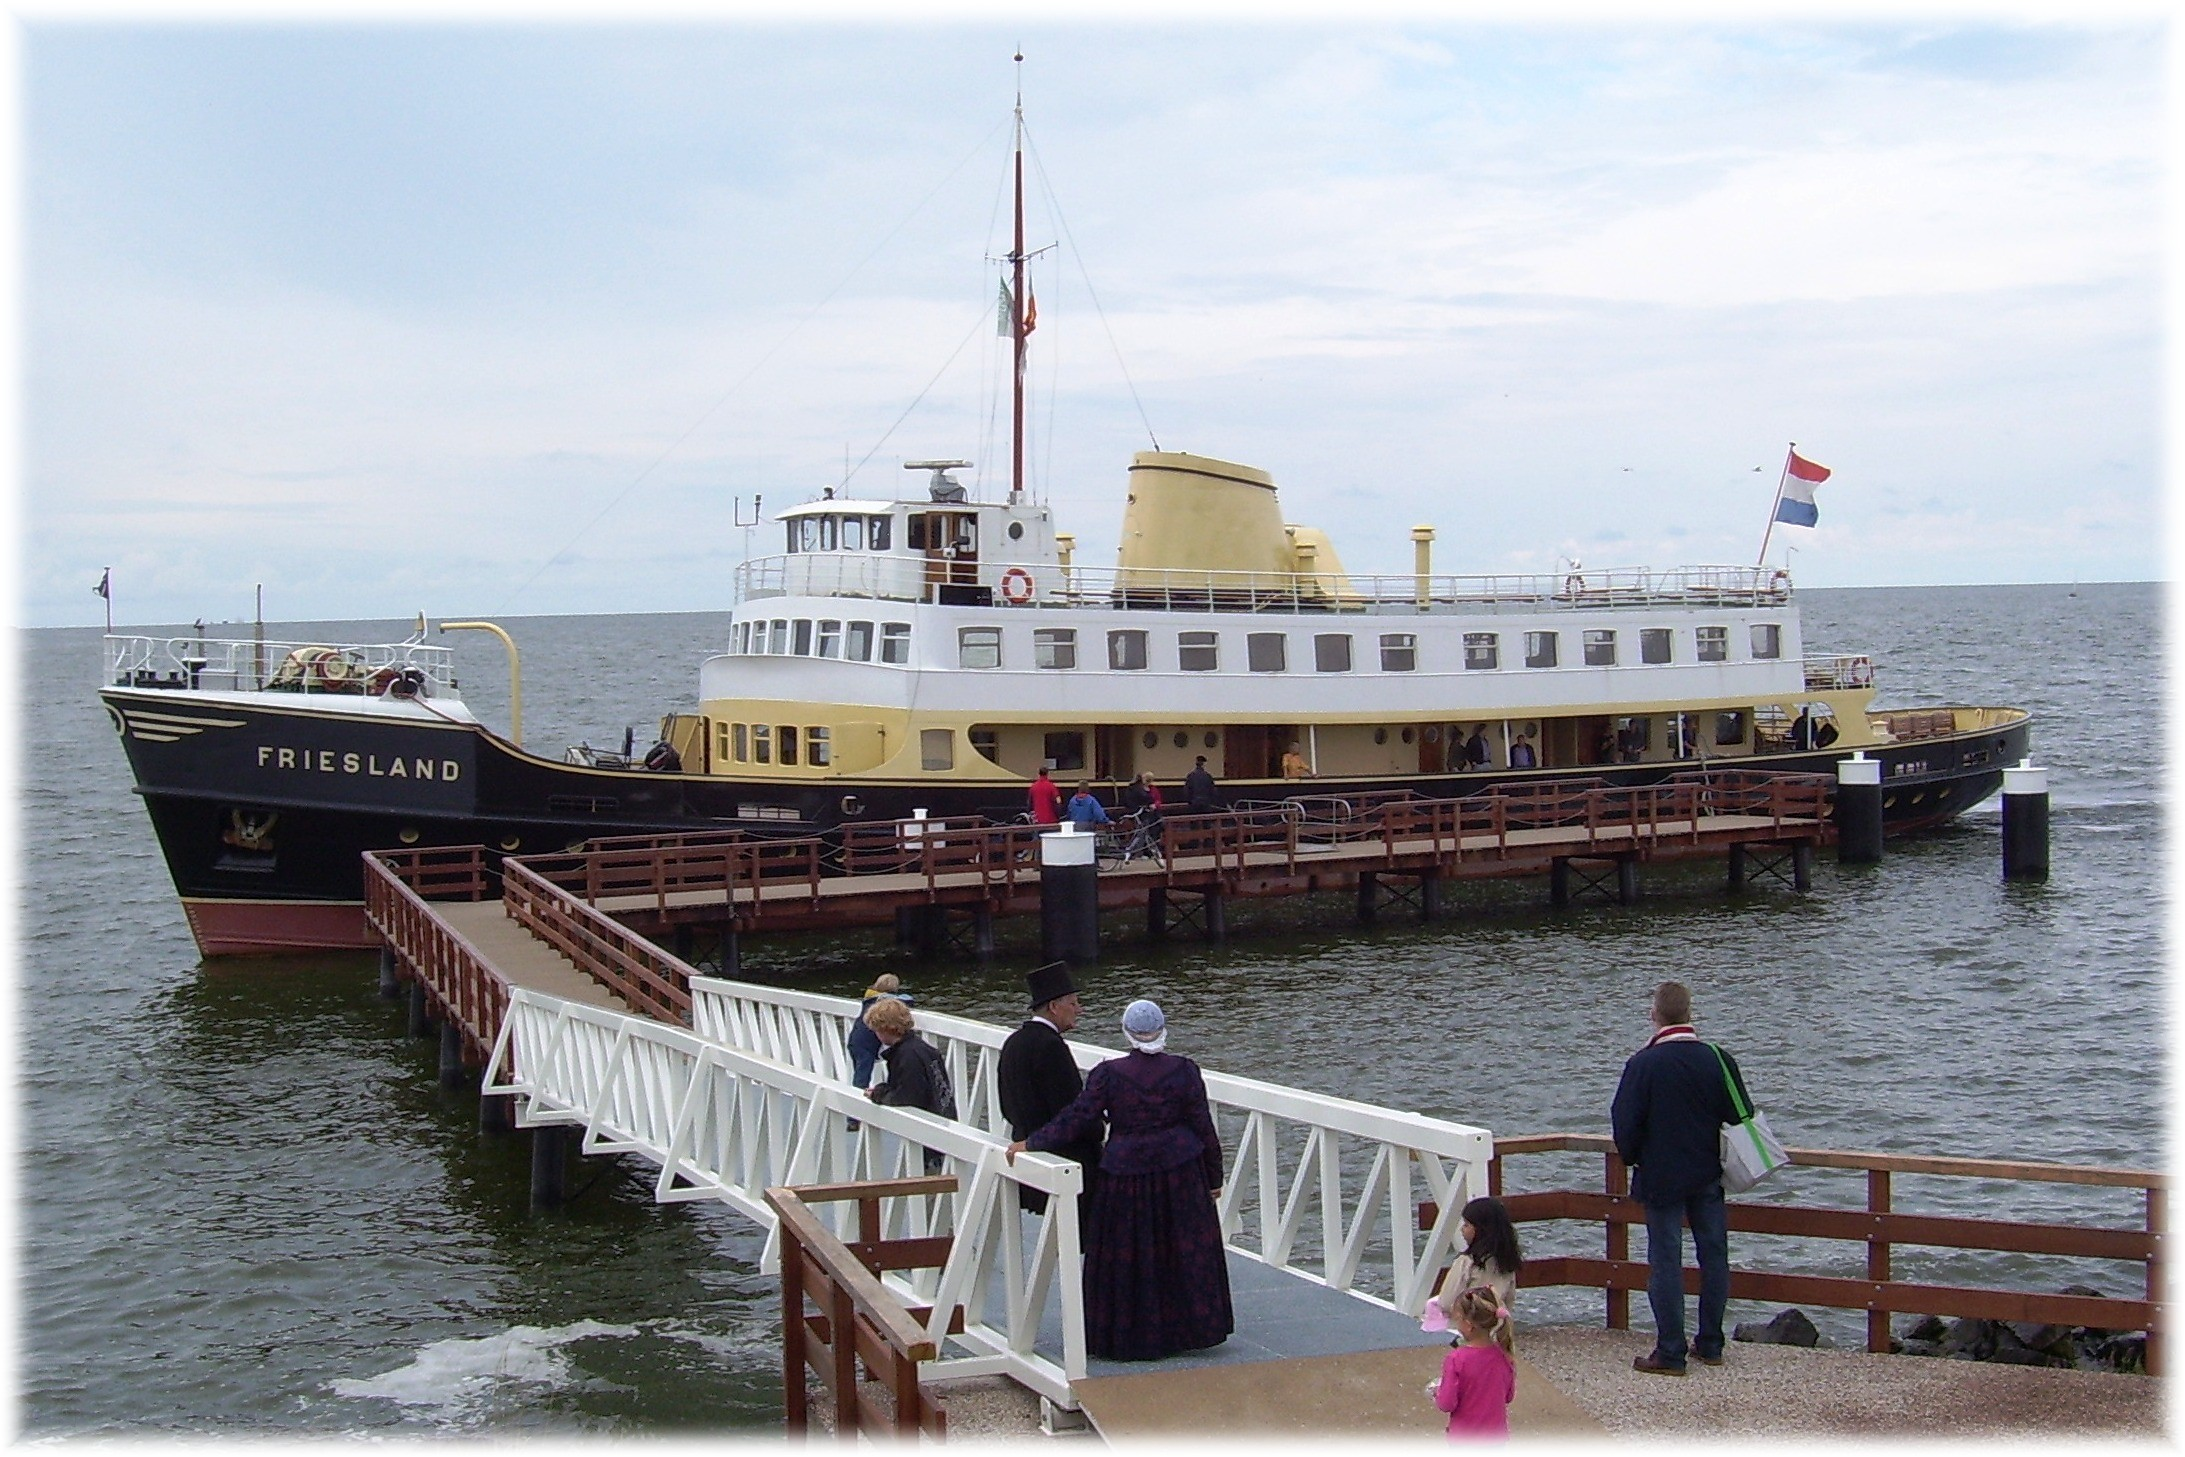 Steamtram and boat Medemblik Hoorn GO Experience Tours Touroperator DMC